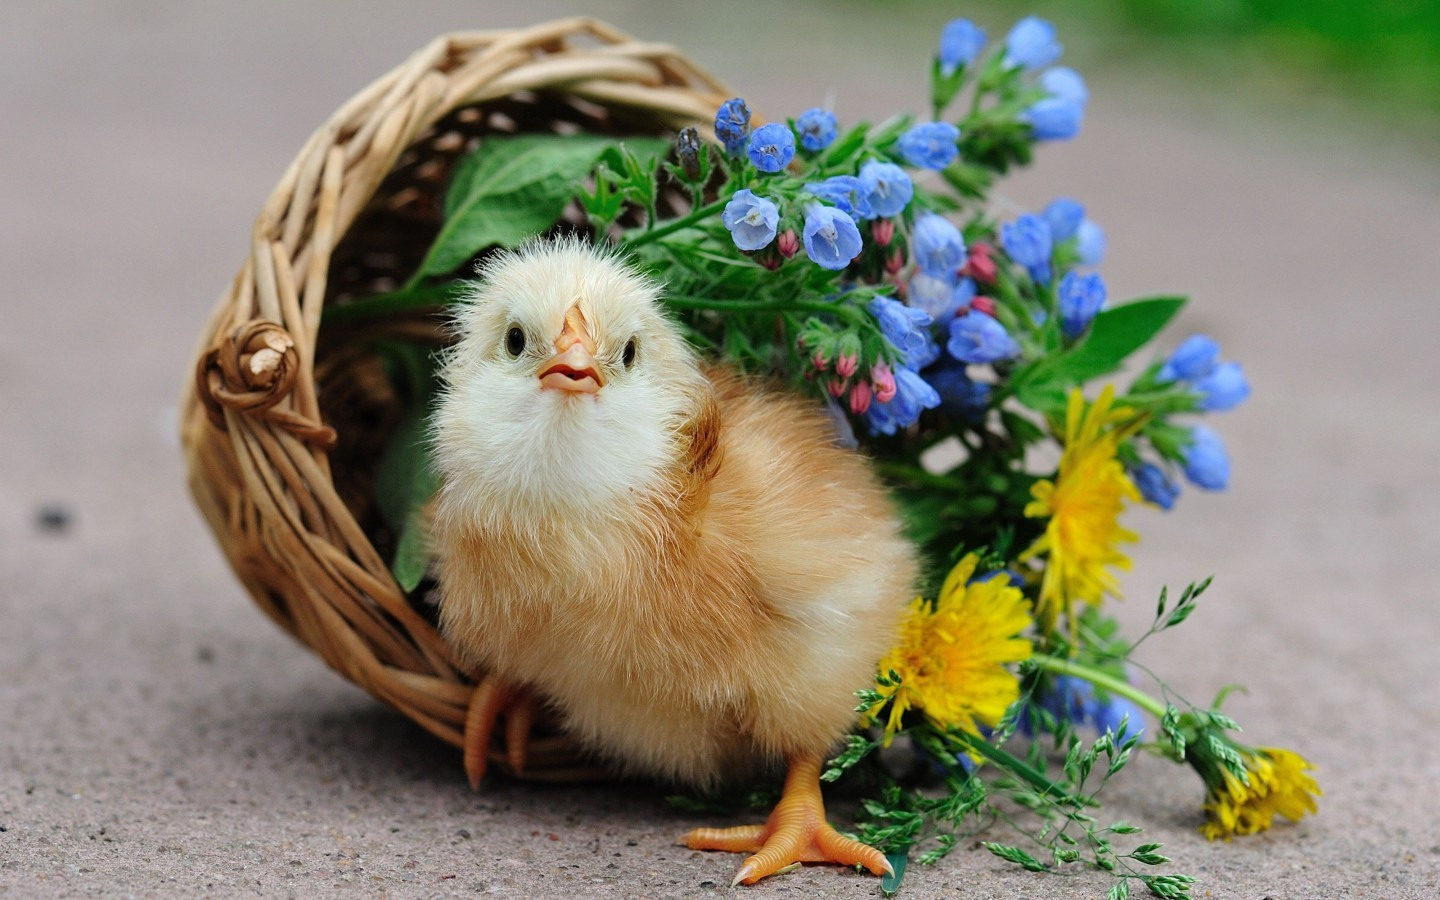 21095 download wallpaper Animals, Birds screensavers and pictures for free